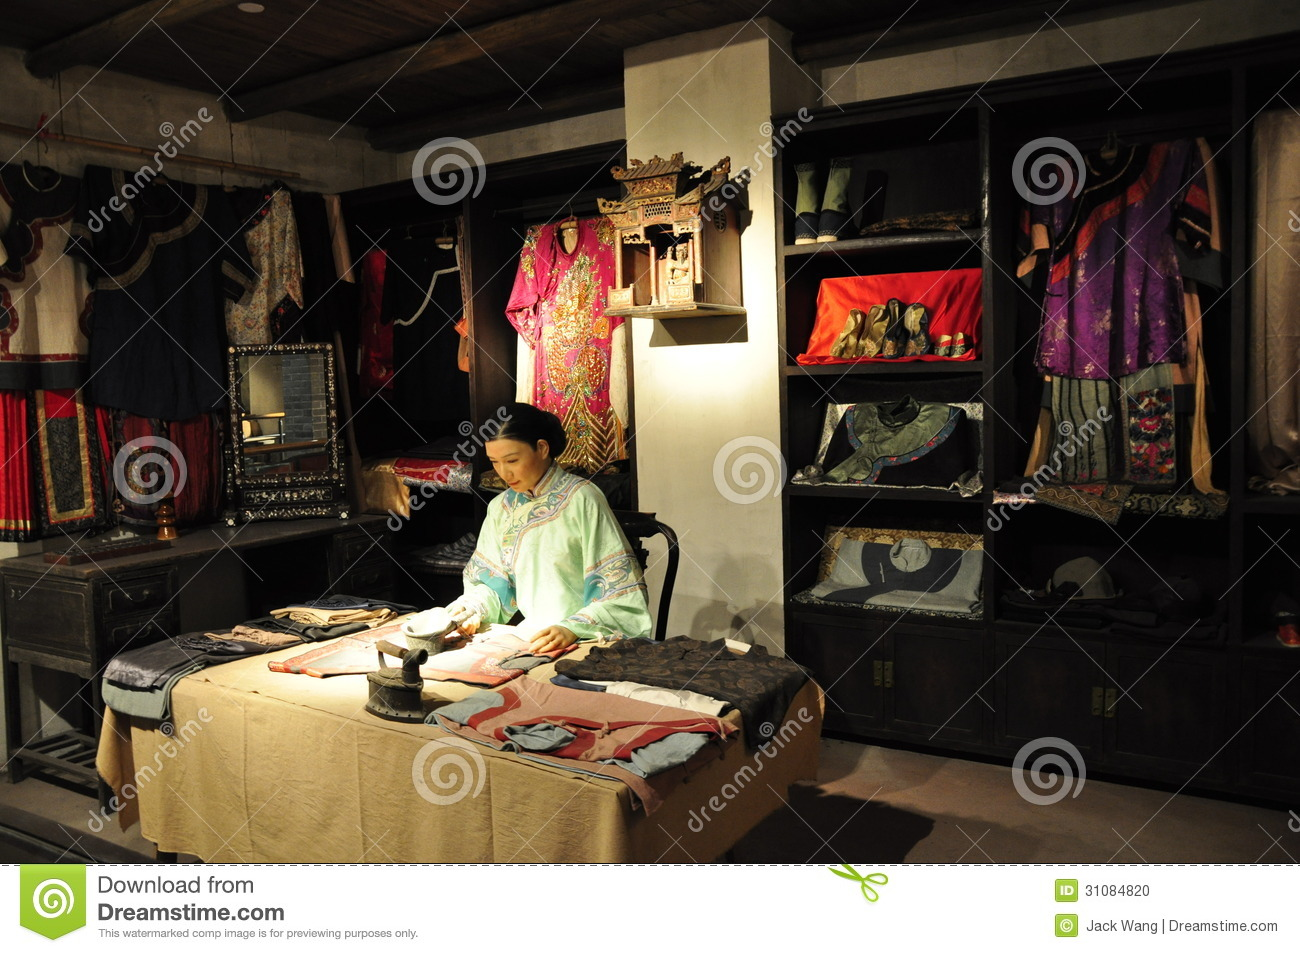 Clothing stores in china Girls clothing stores